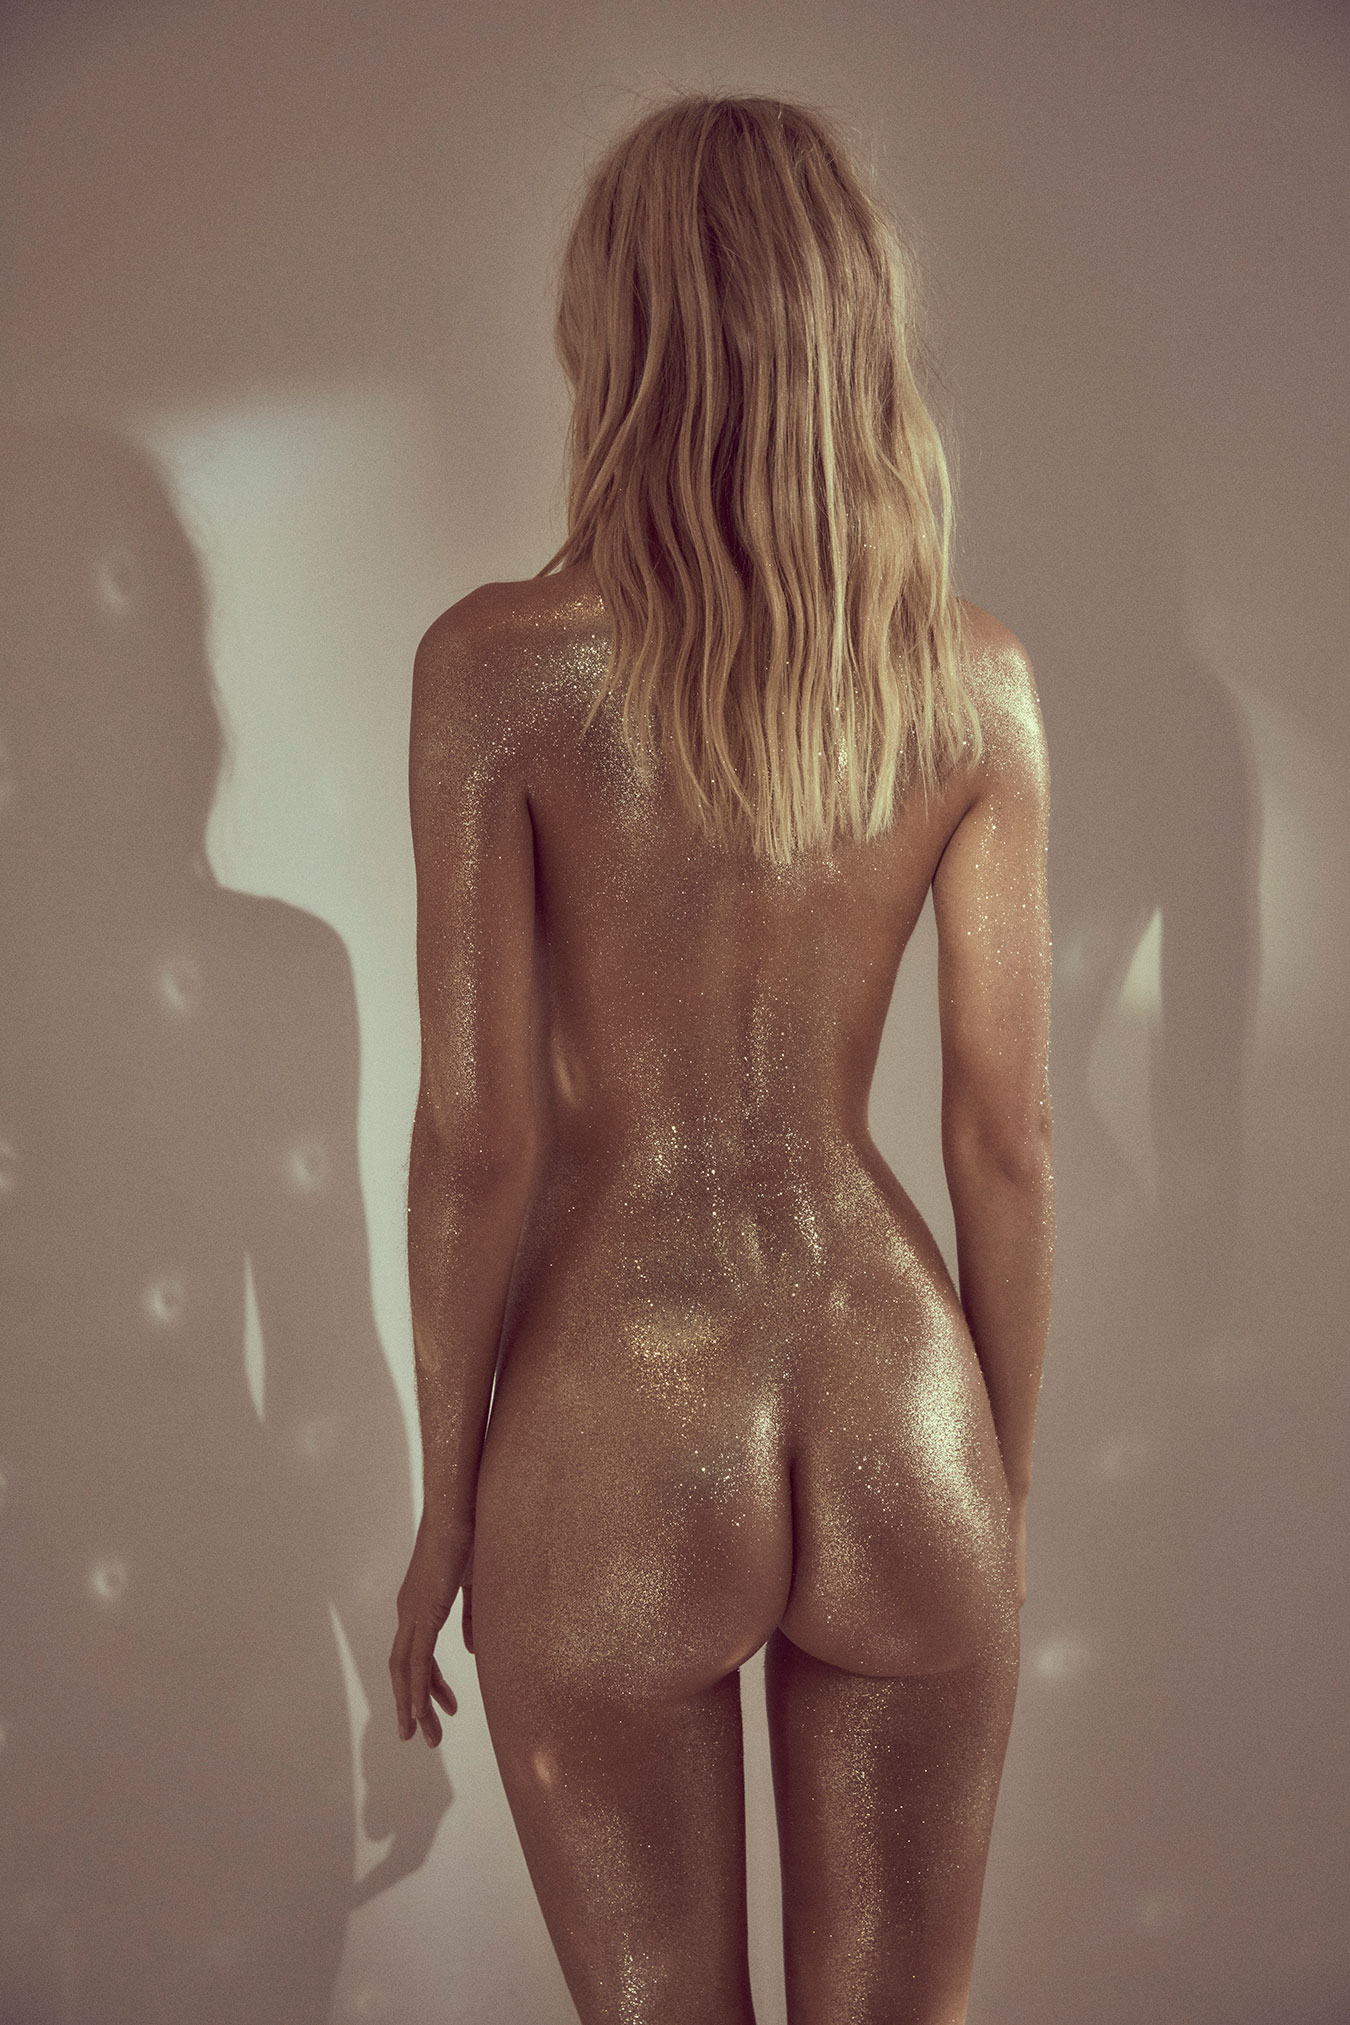 Ideal Norway Nude Photo Png